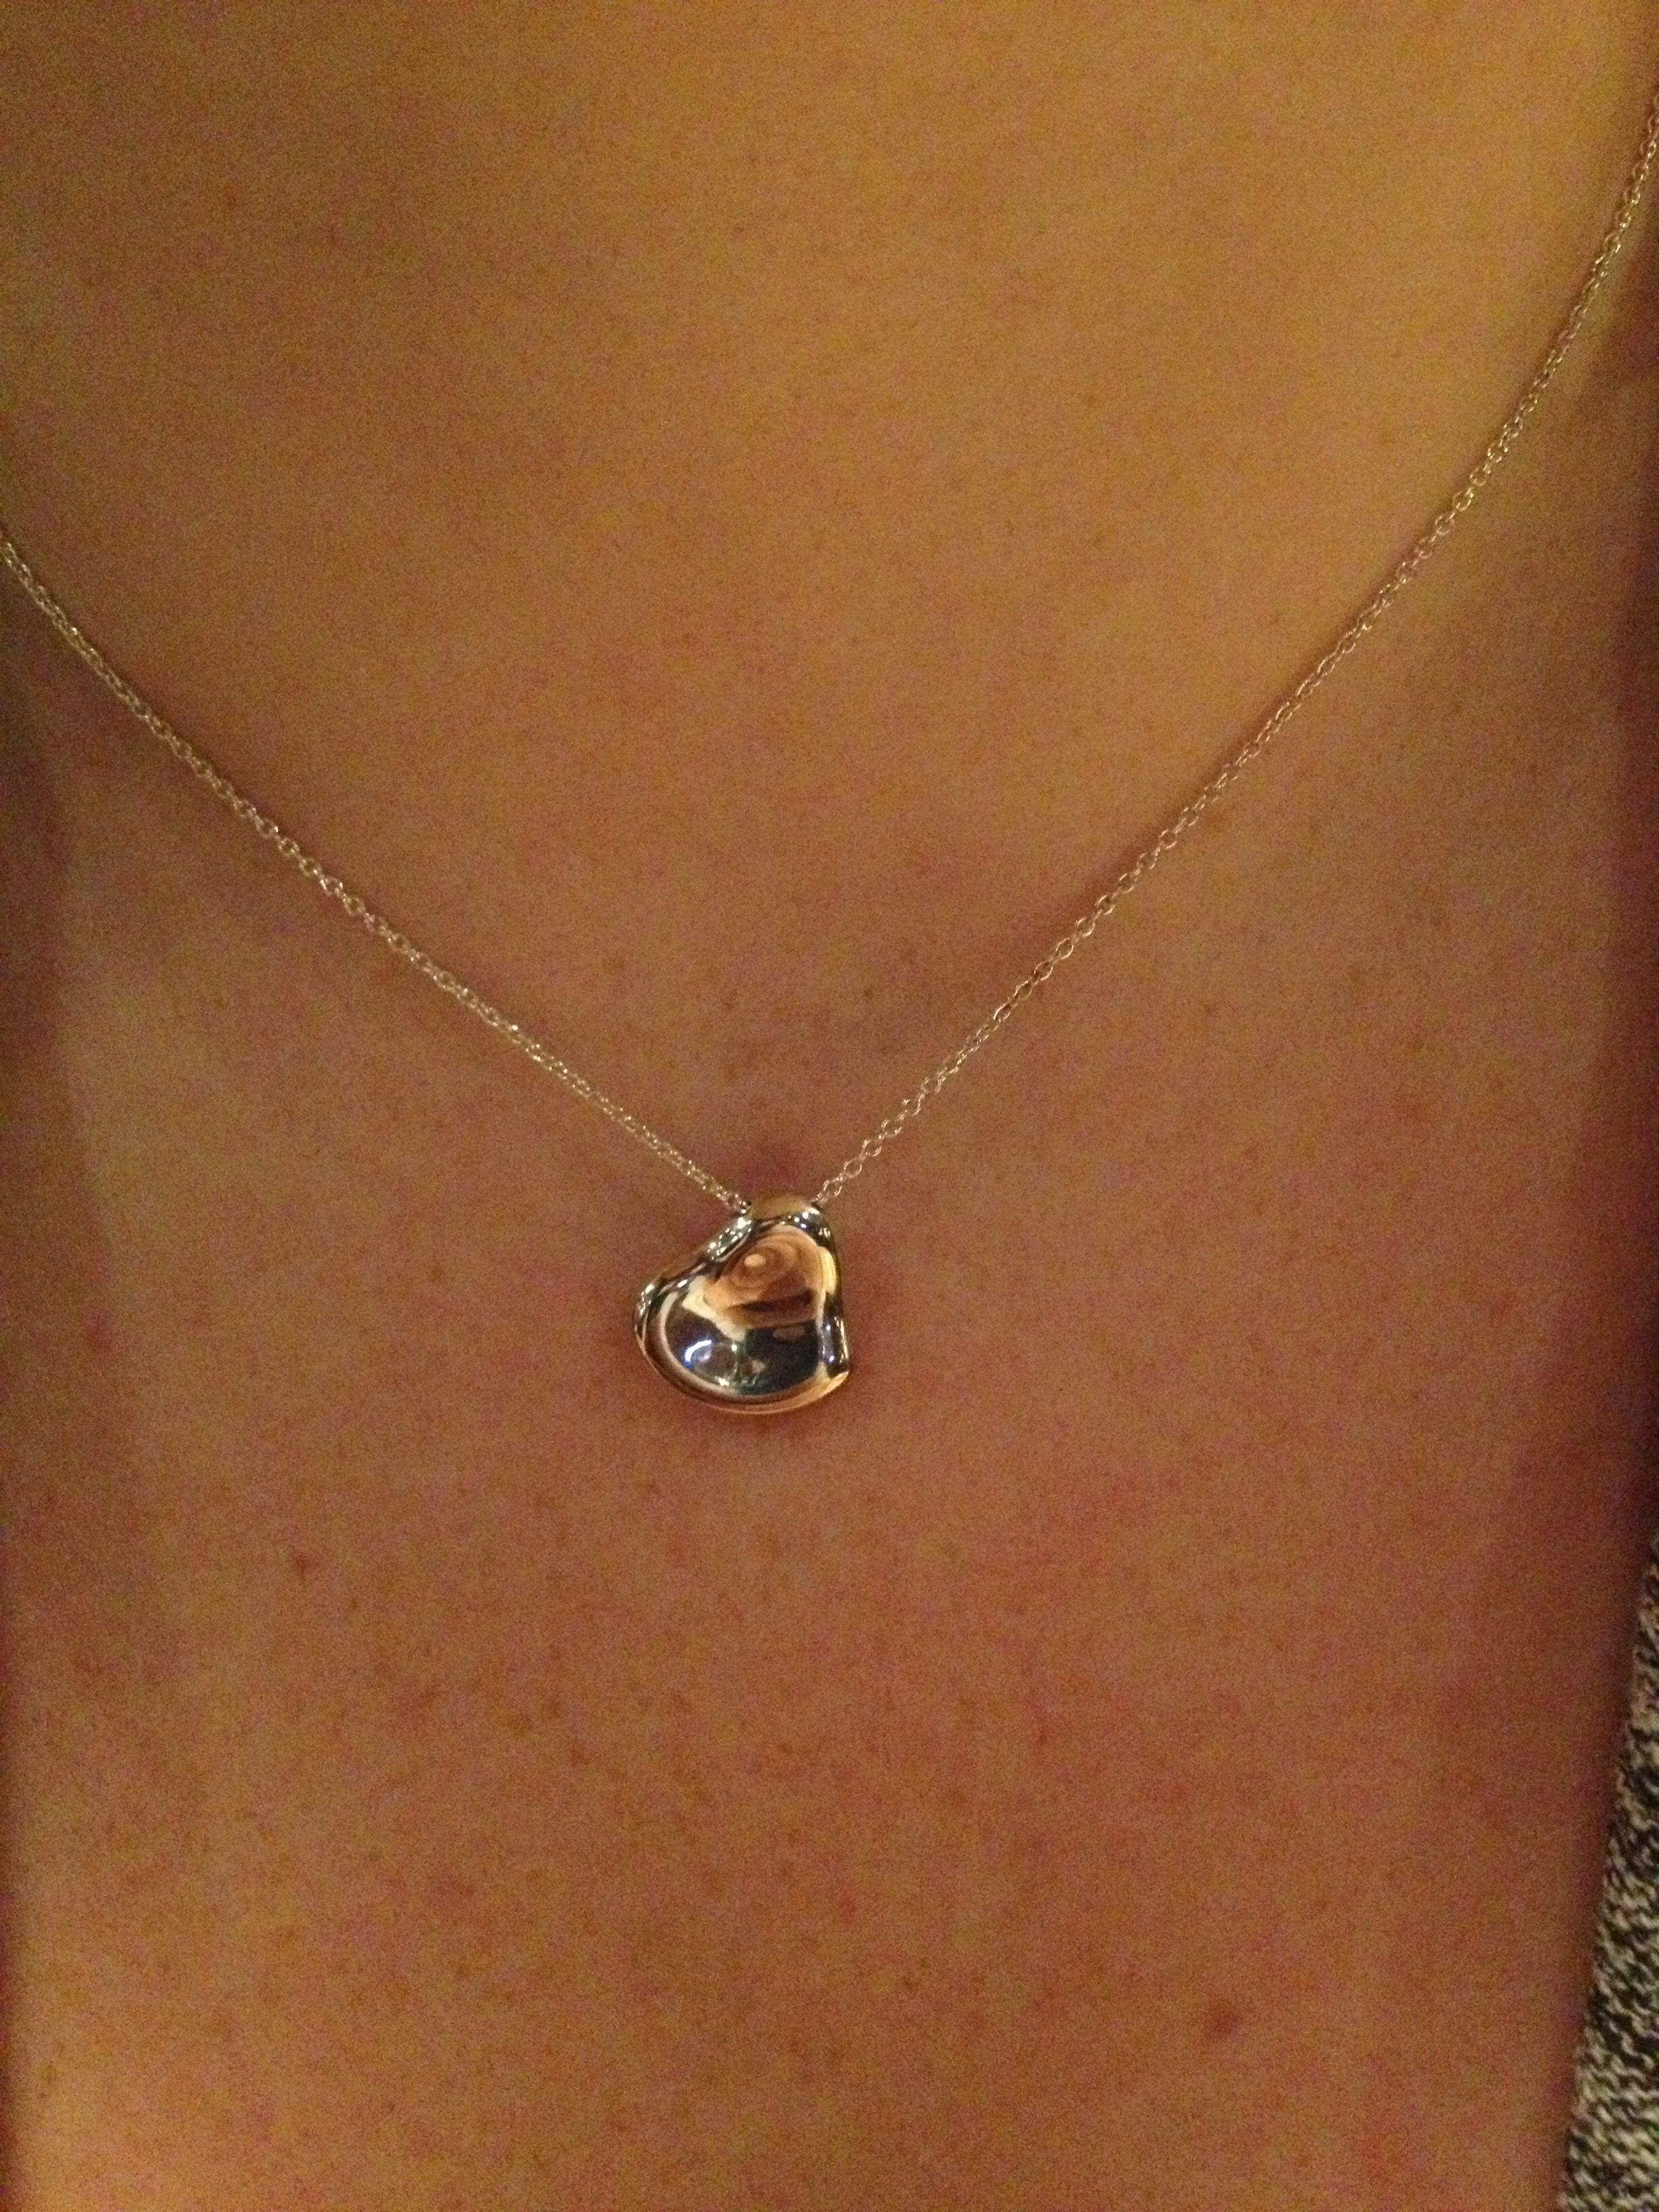 bdbd010fc (Elsa Peretti full-heart) necklace my boyfriend just surprised me with for  our anniversary!<3